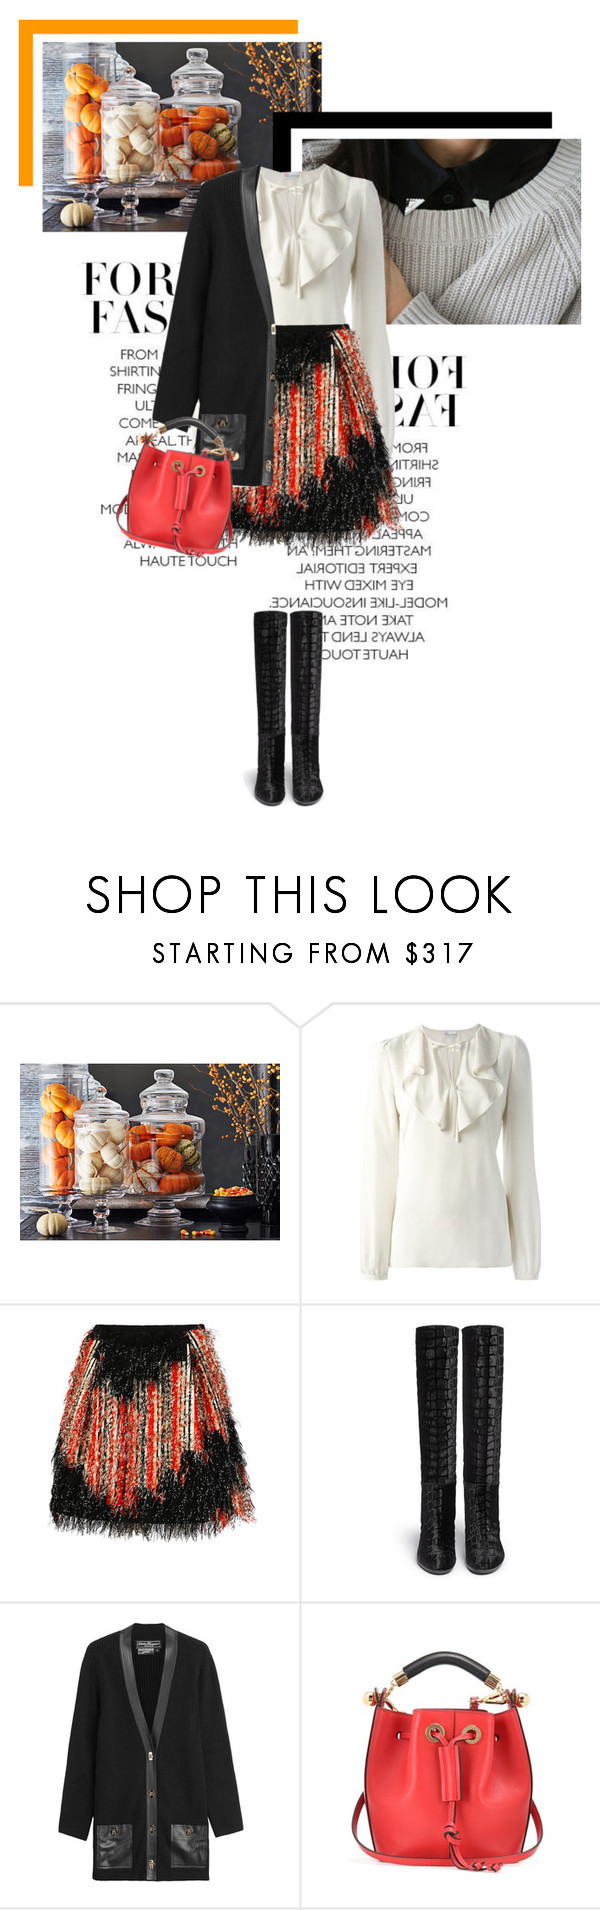 """Autumn has come"" by veronicamastalli ❤ liked on Polyvore featuring RED Valentino, Fendi, Stuart Weitzman, Salvatore Ferragamo and Chloé"